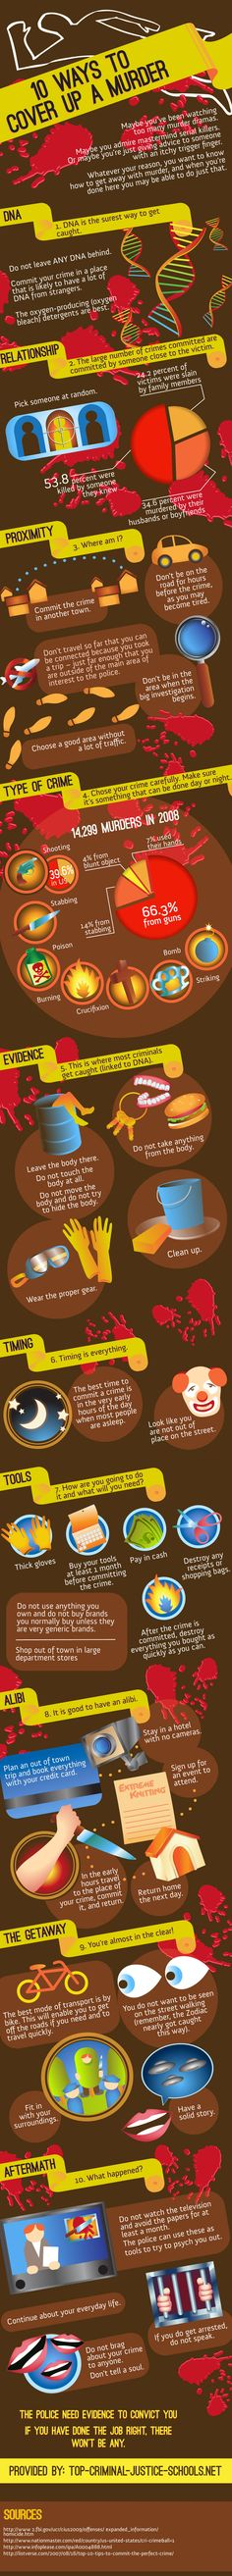 10 steps to commit a murder and get away with it... just in case ;-)